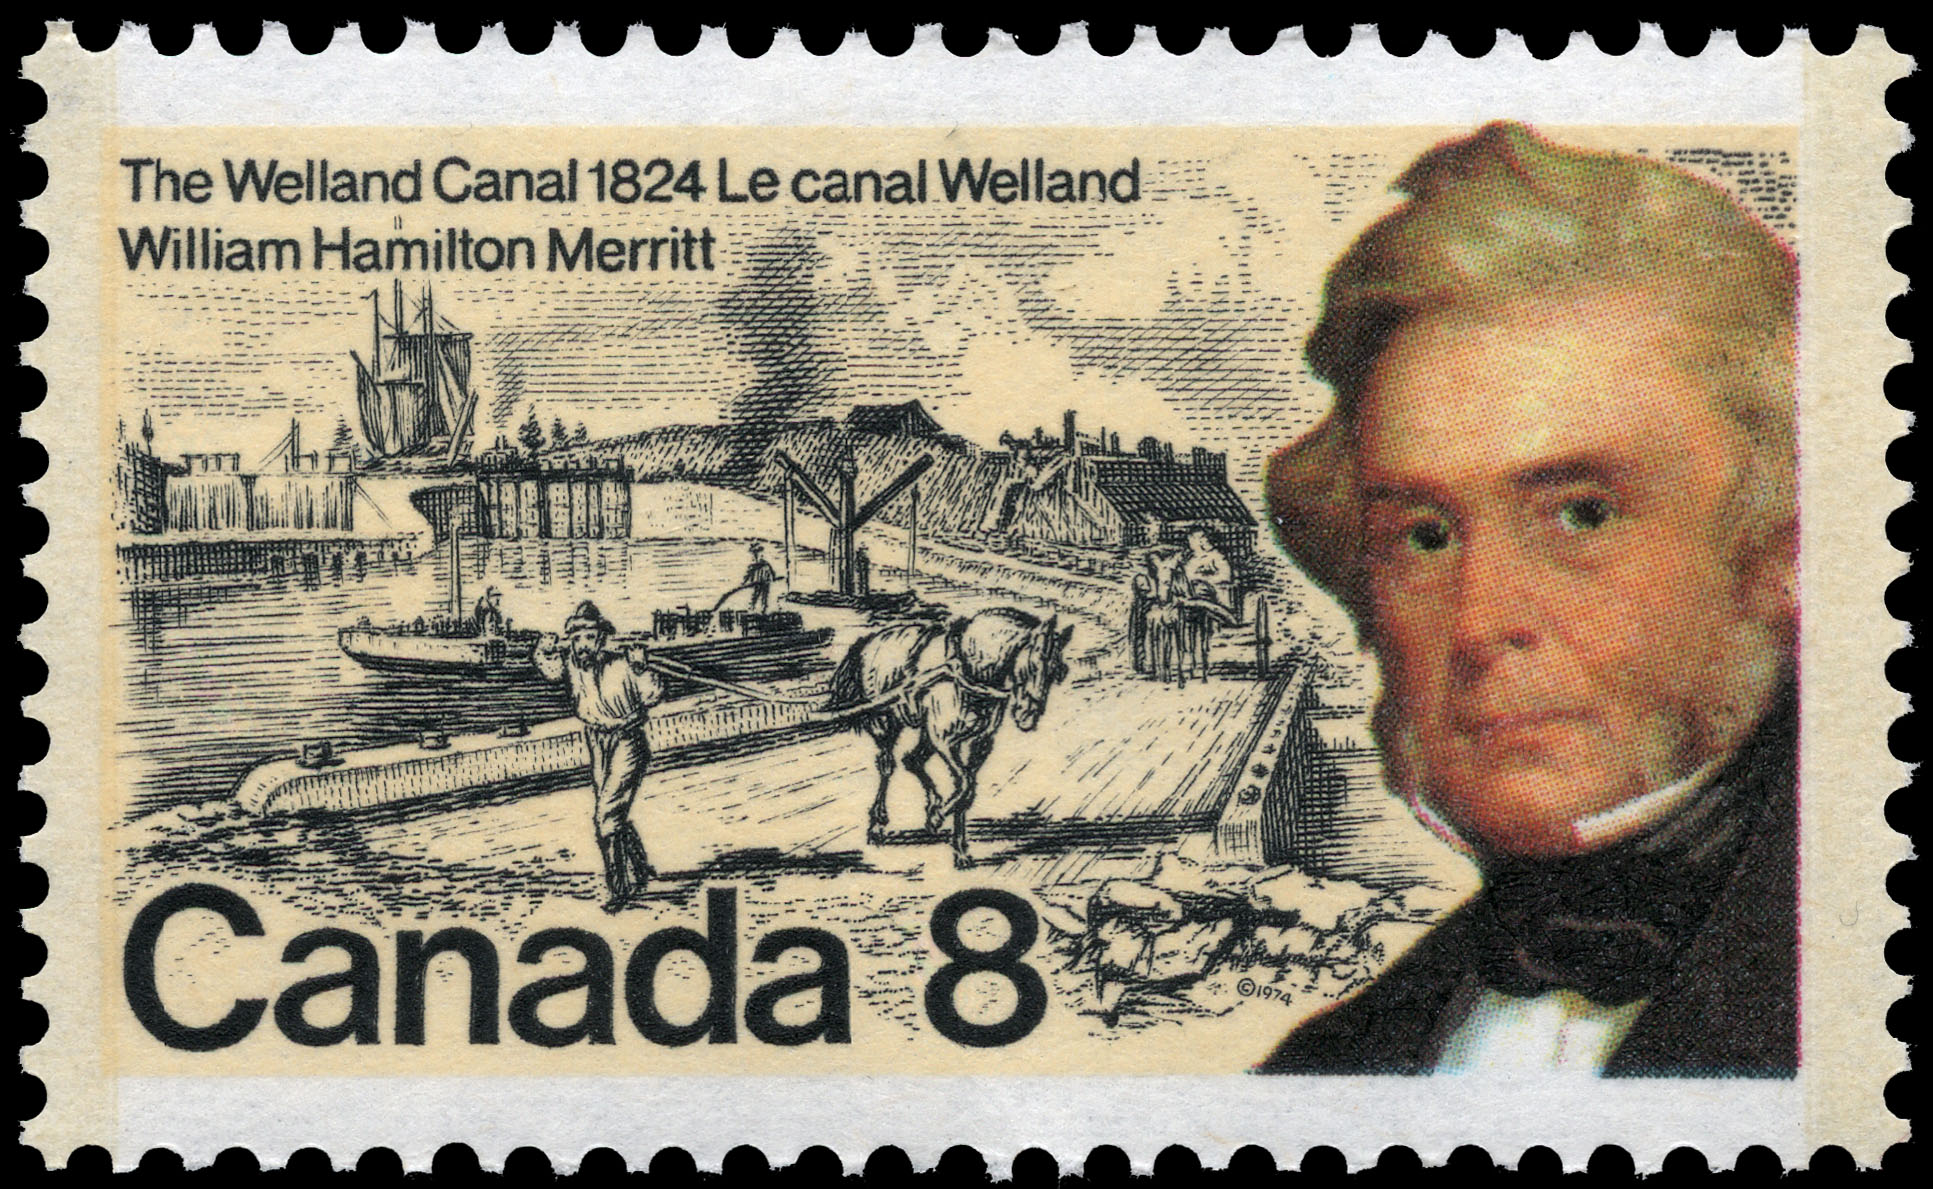 William Hamilton Merritt, The Welland Canal, 1824 Canada Postage Stamp